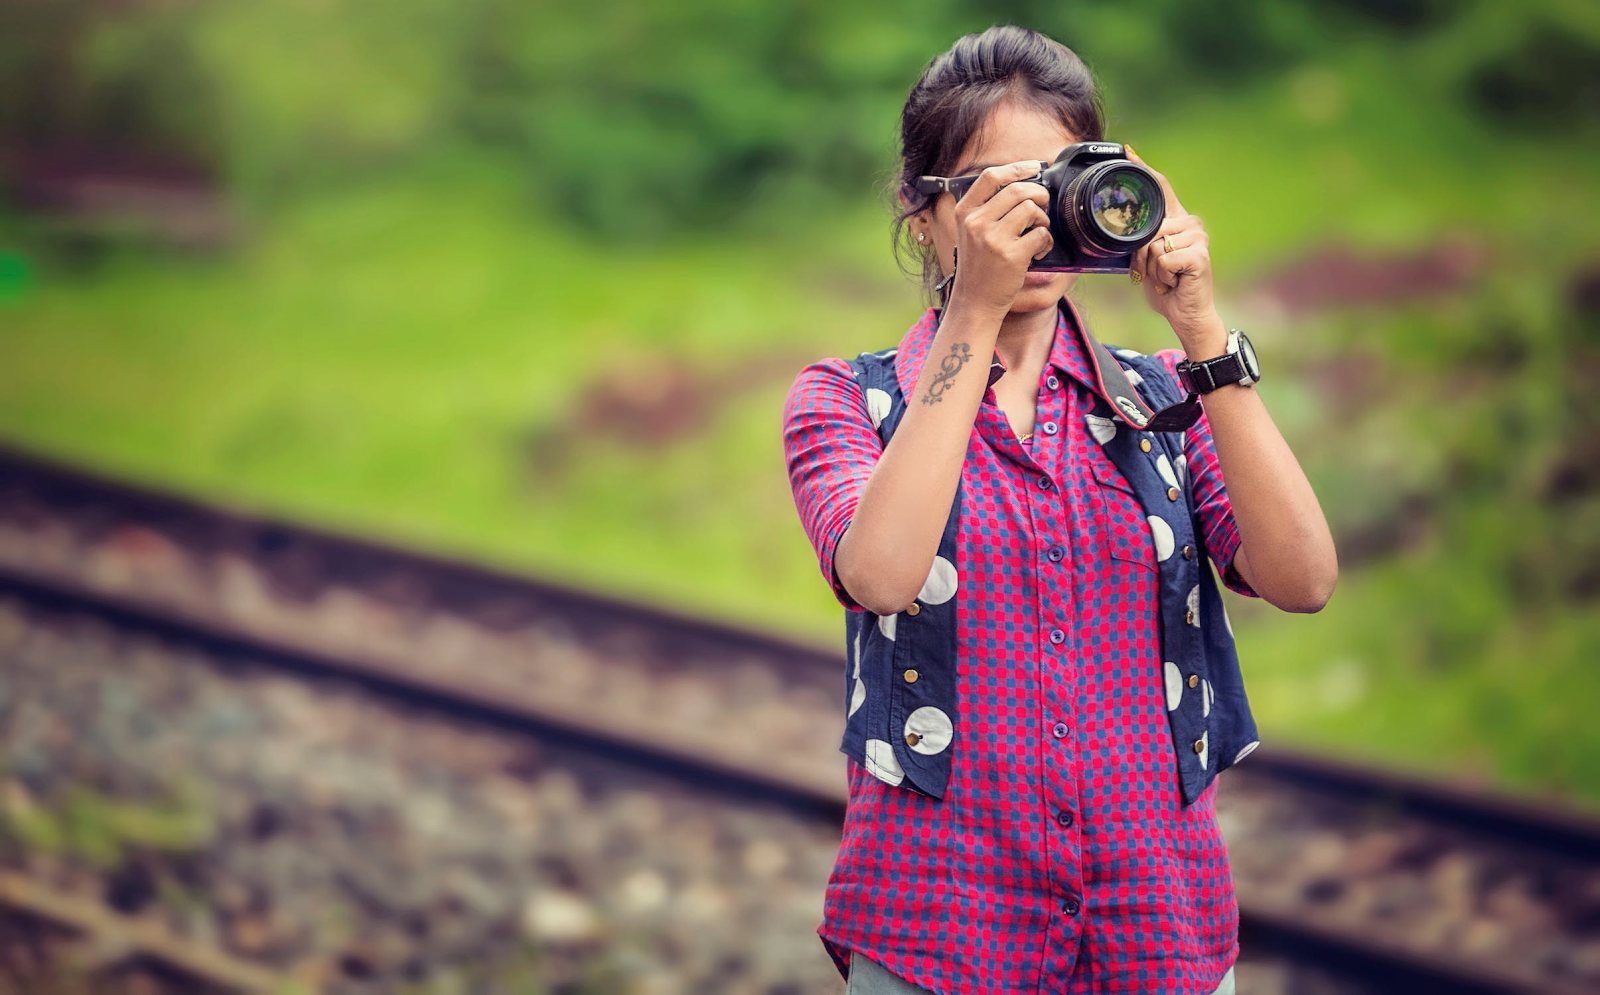 woman in red plaid shirt taking a photo in front of a railroad